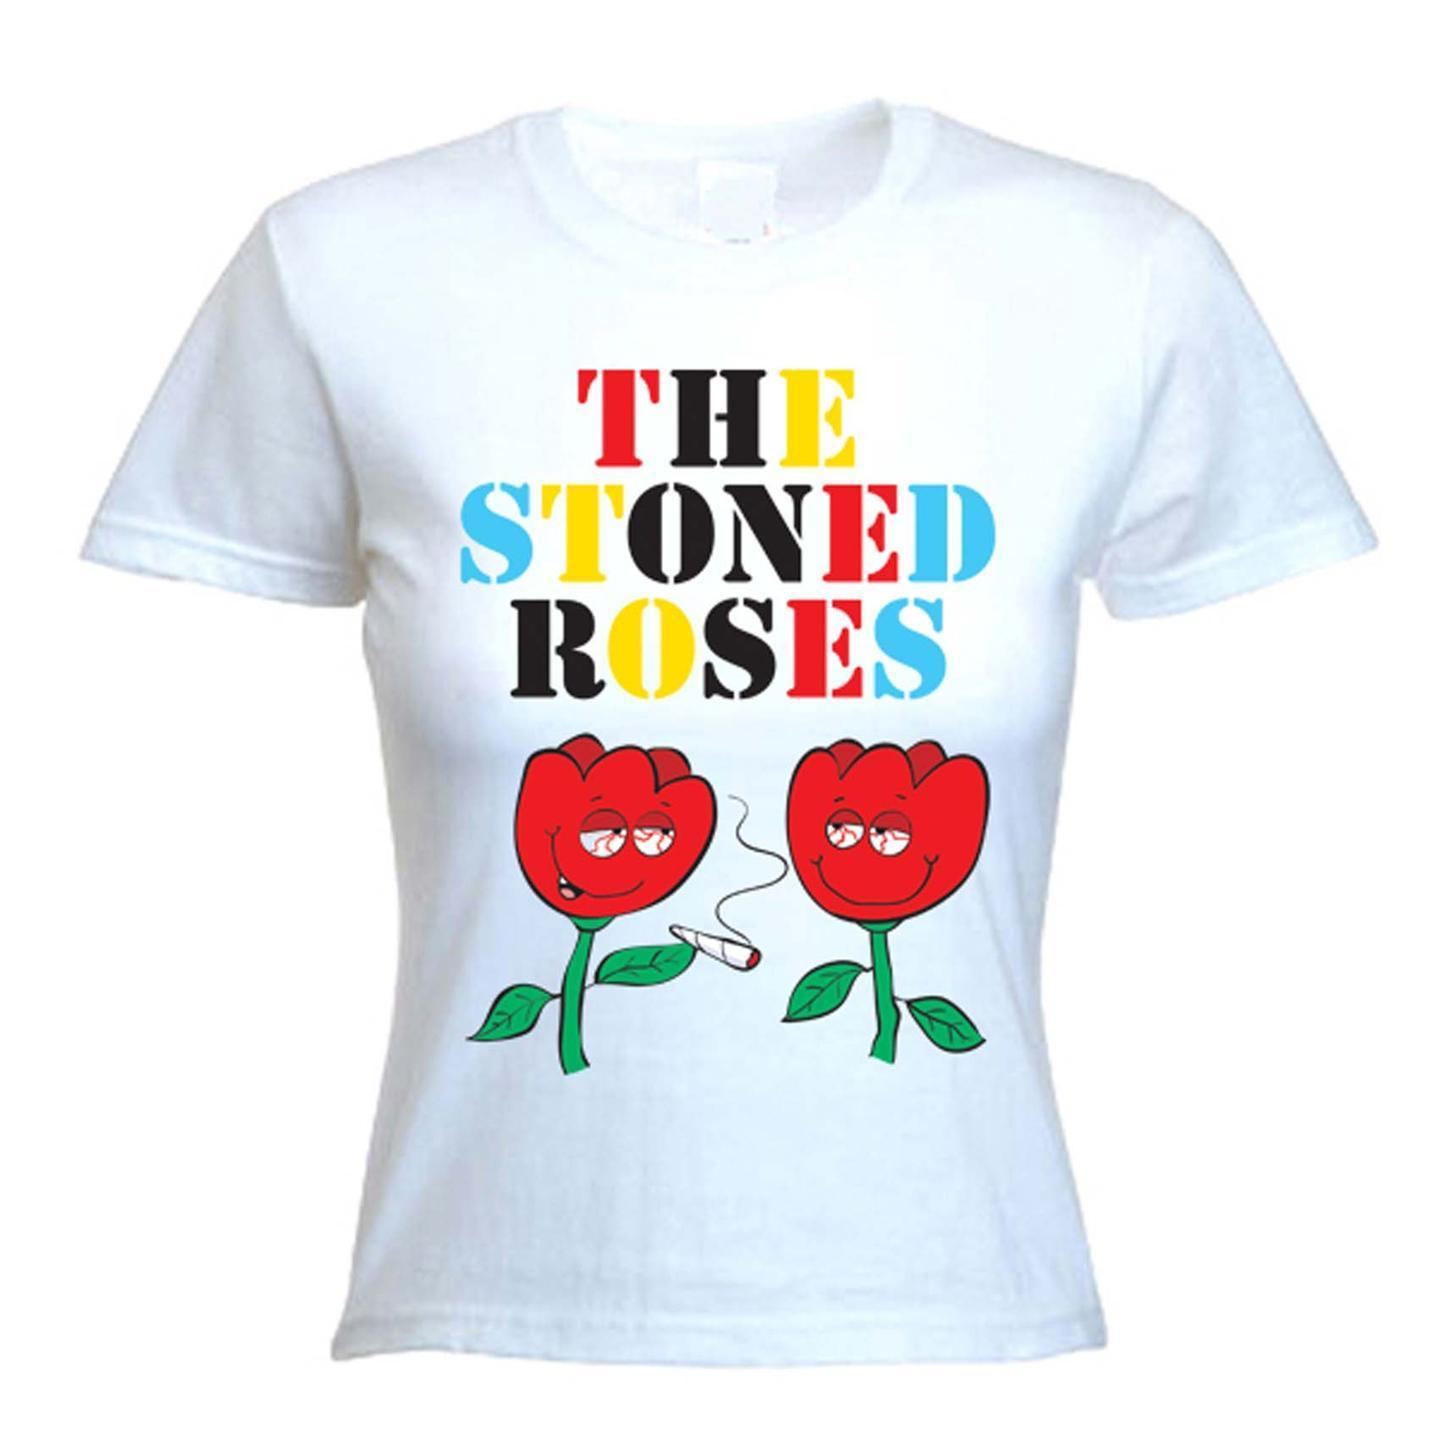 STONED ROSES WOMEN'S T-SHIRT - Cannabis Festival Stone Smoking Bong Marijuana 1